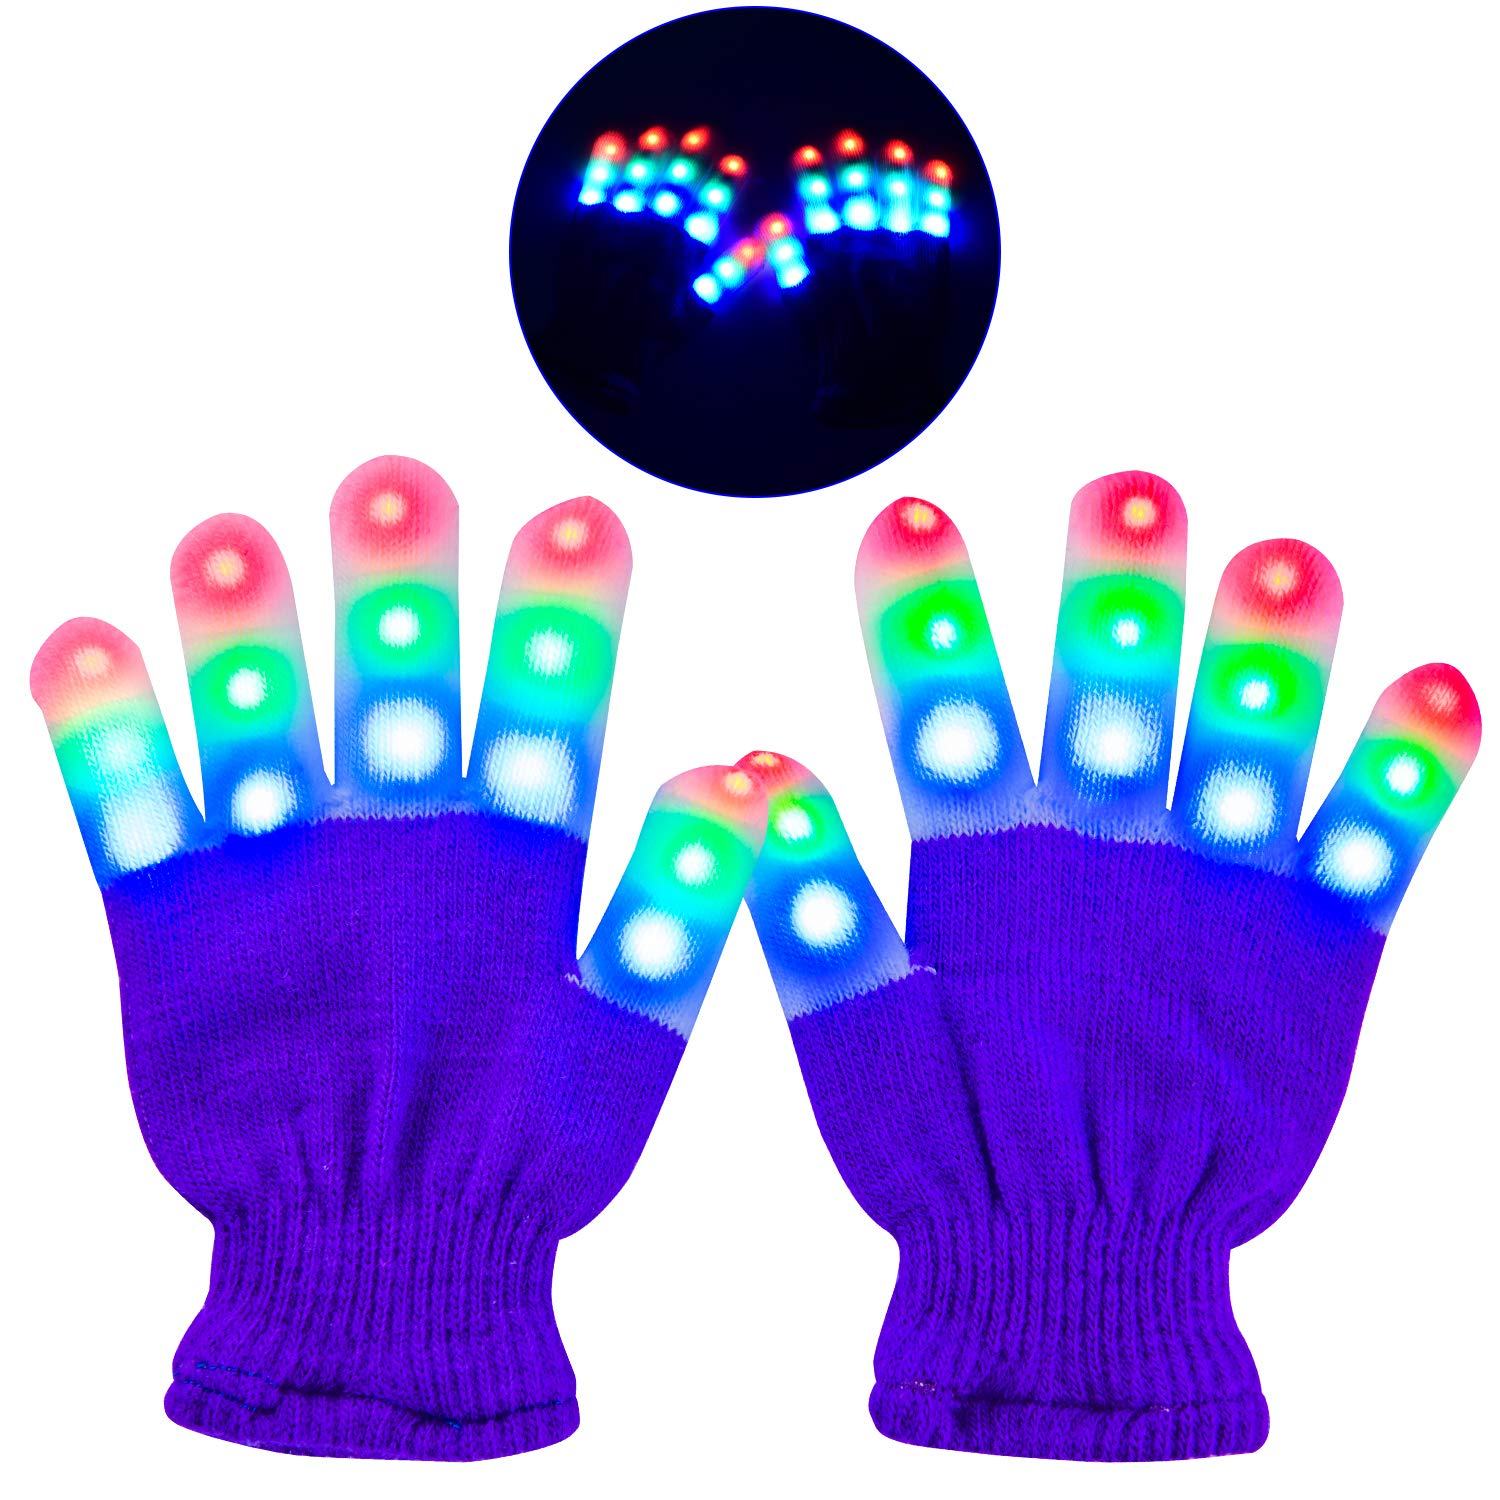 Fantastic LED gloves